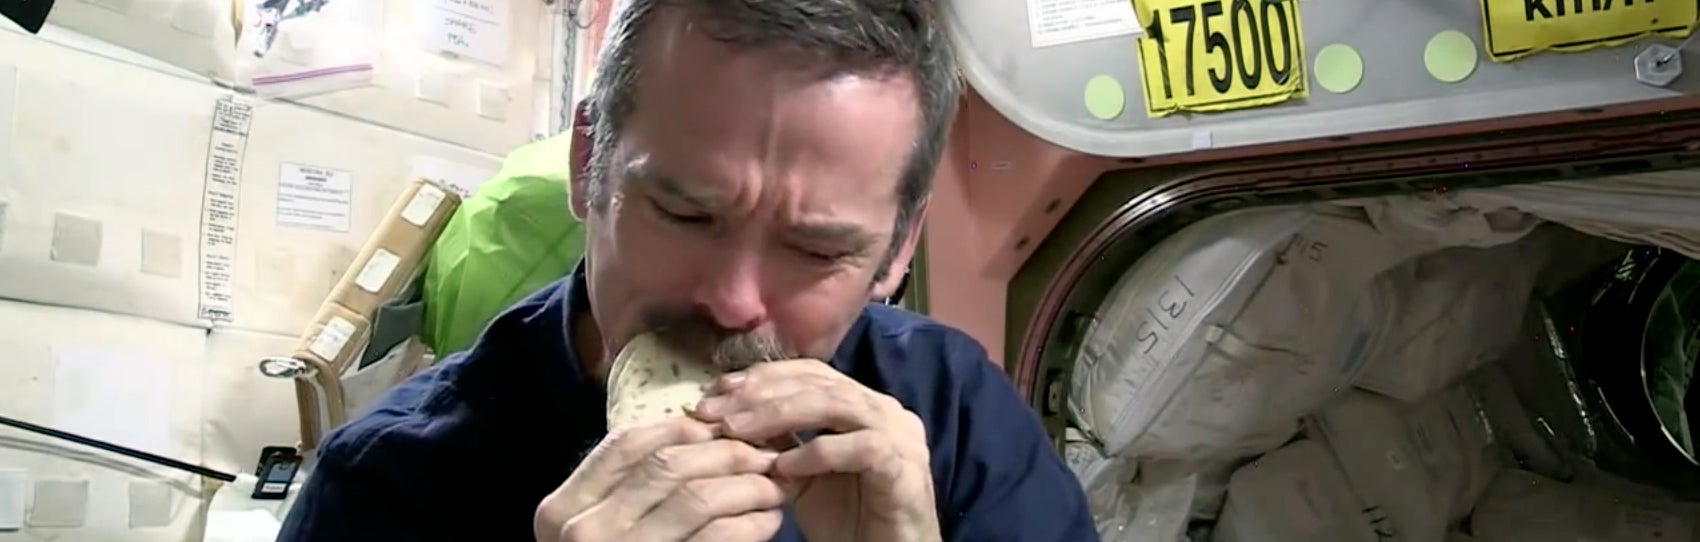 Why astronauts eat tortillas in space explained in one comic